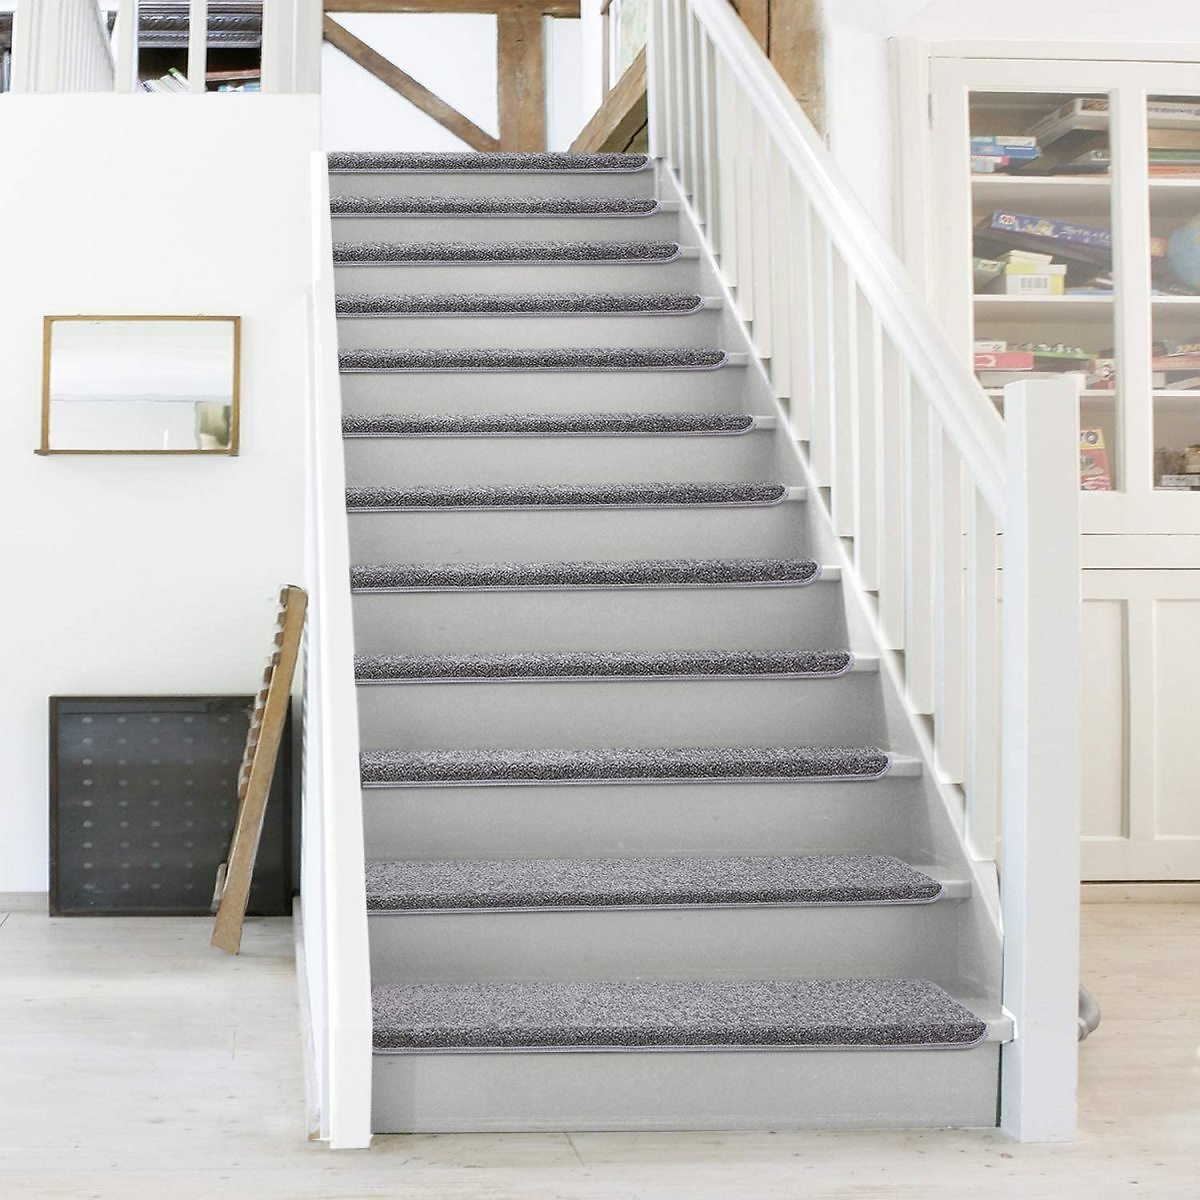 PURE ERA Carpet Stair Treads Set of 14 Non Slip Self Adhesive Bullnose Indoor Stair Protectors Pet Friendly Rugs Covers Mats Skid Resistant Tape Free Washable Soft Solid Dark Grey 9.5